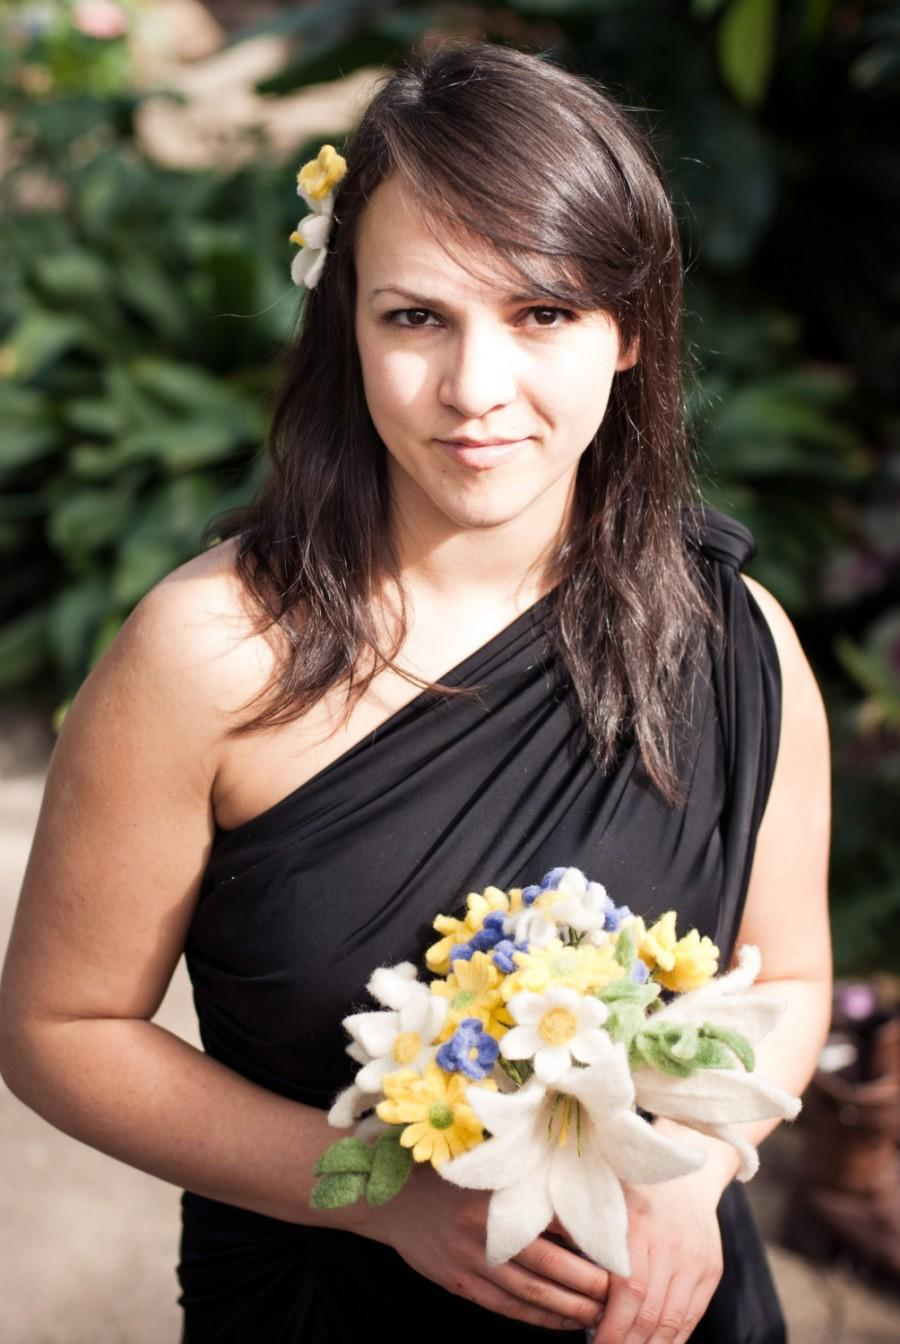 Hochzeit - Unique felt flower wedding bouquet with yellow, blue, and white flowers for your ethical wedding ceremony